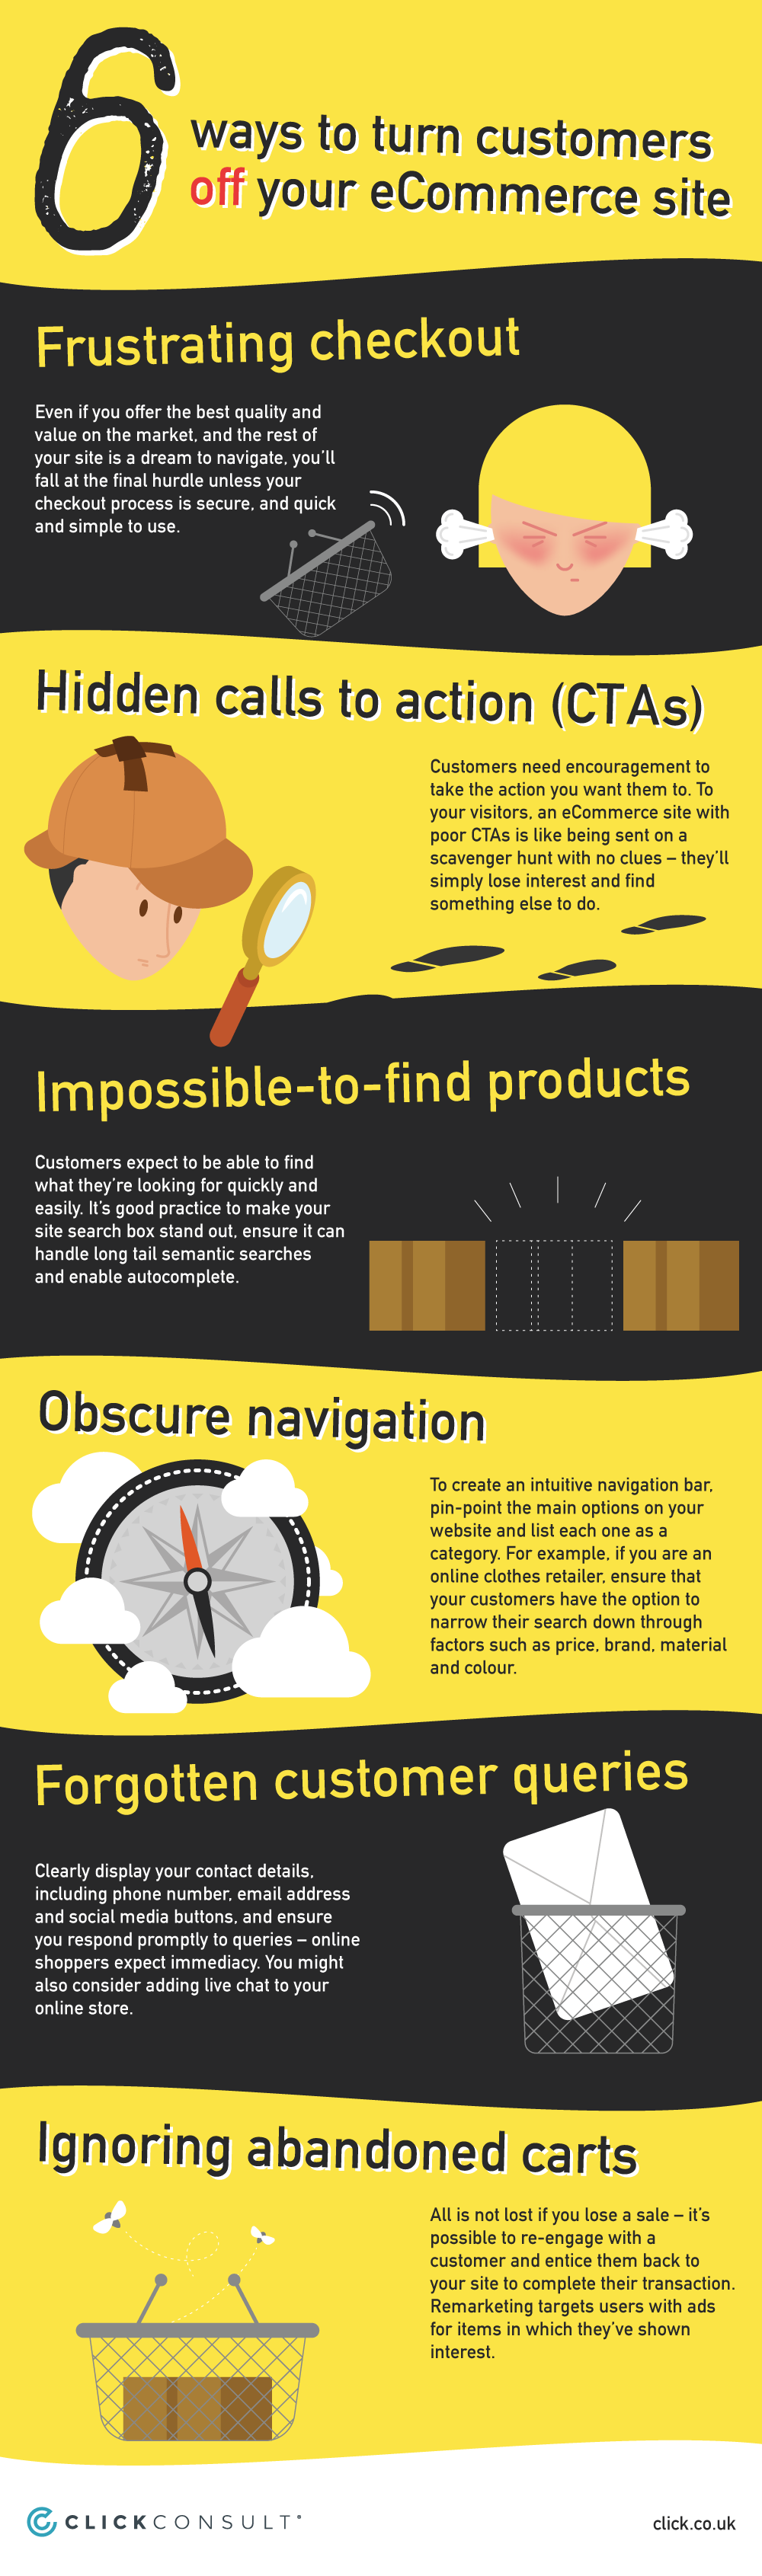 6 Ways to Turn Customers Off Your eCommerce Site - #Infographic